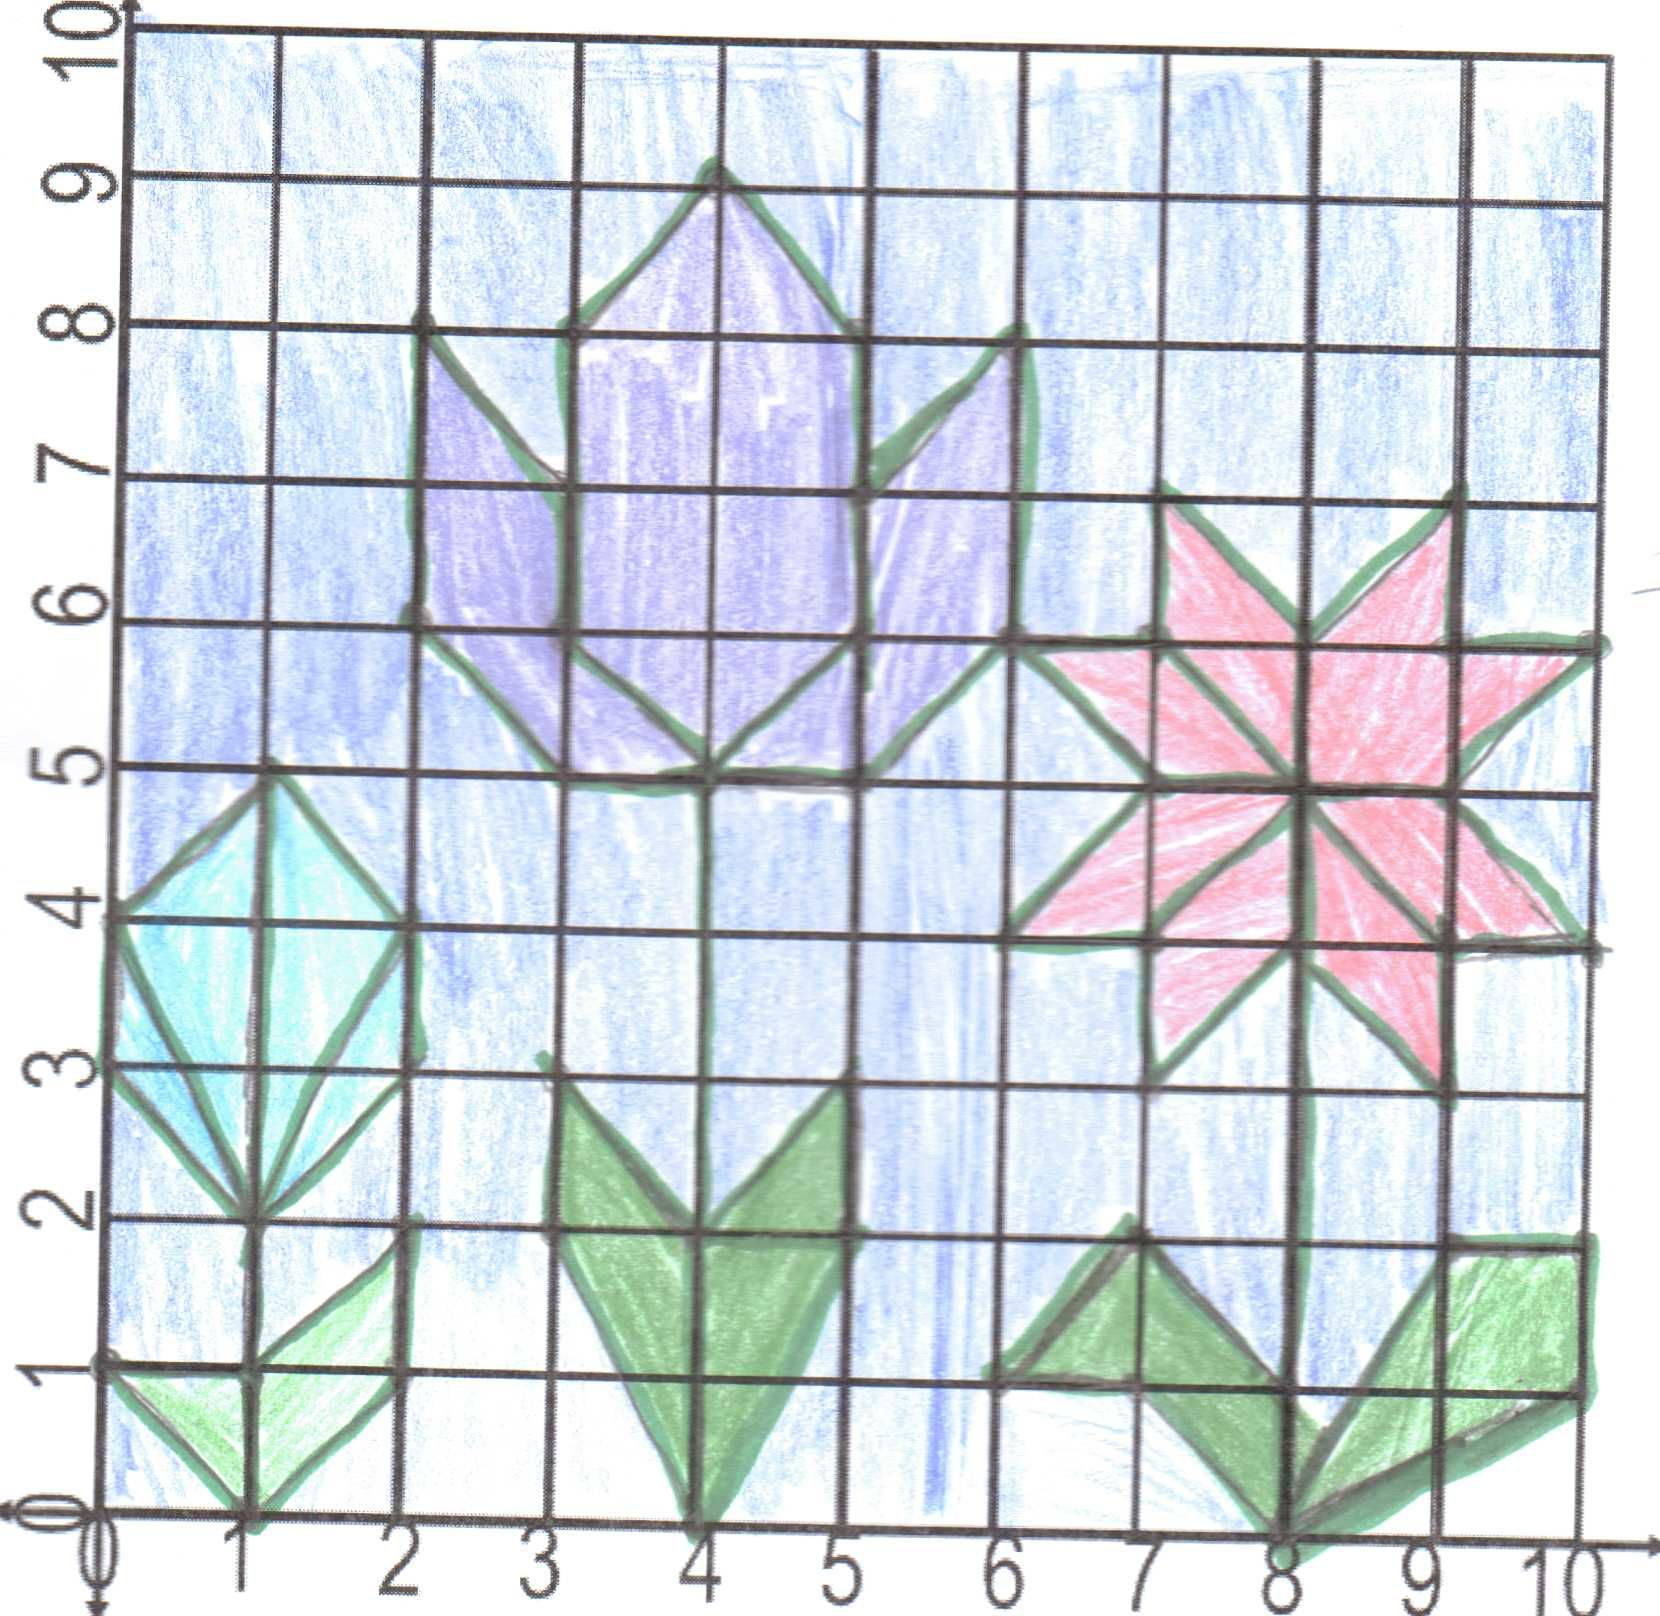 Flower Power From Mathbymandy Student Work From K F